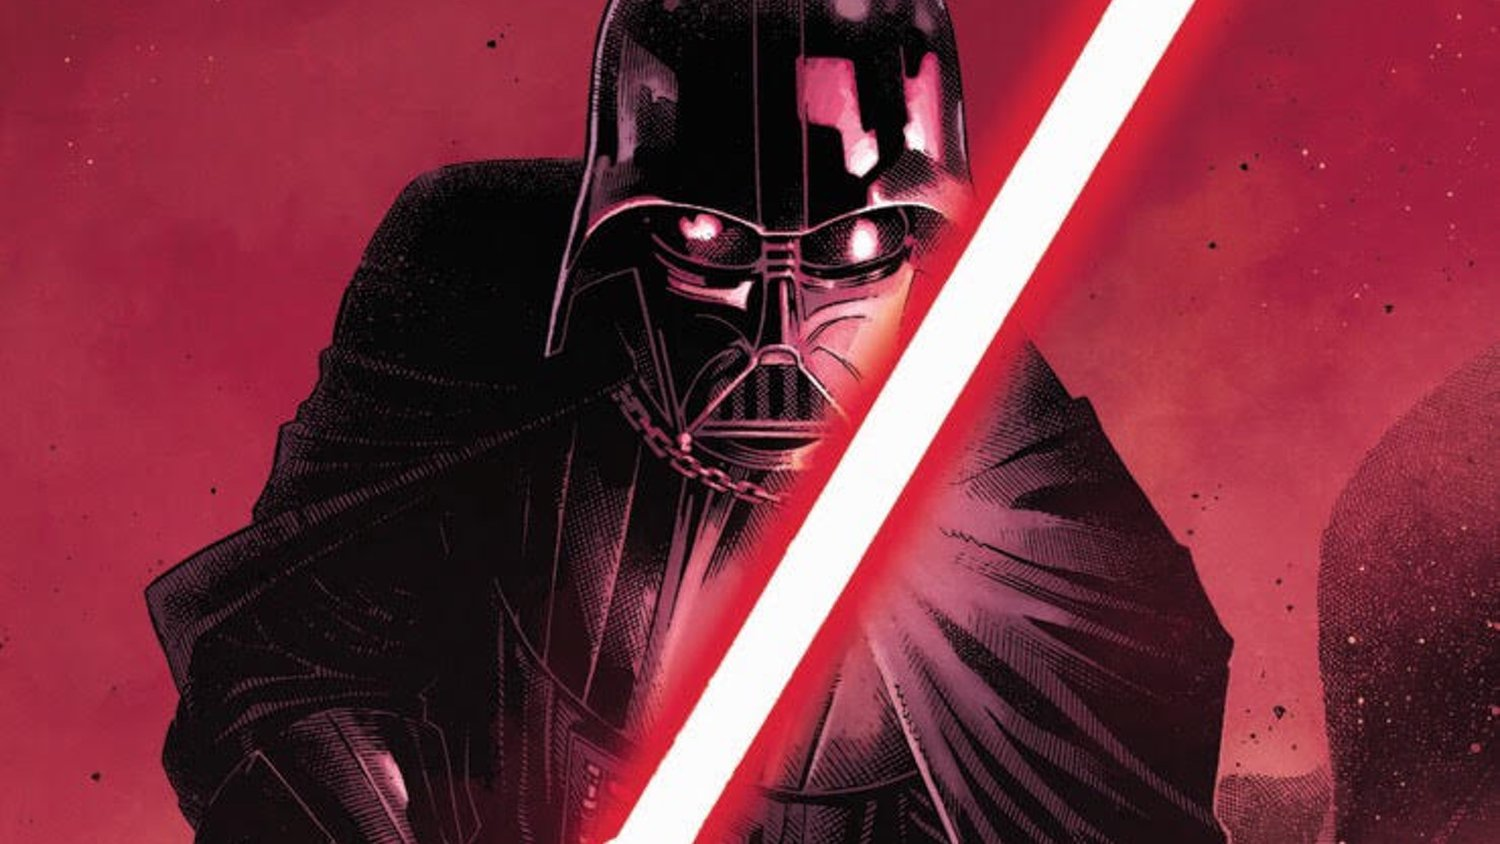 Details on the New STAR WARS Comic That Will Tell the Stories of a Young Darth Vader